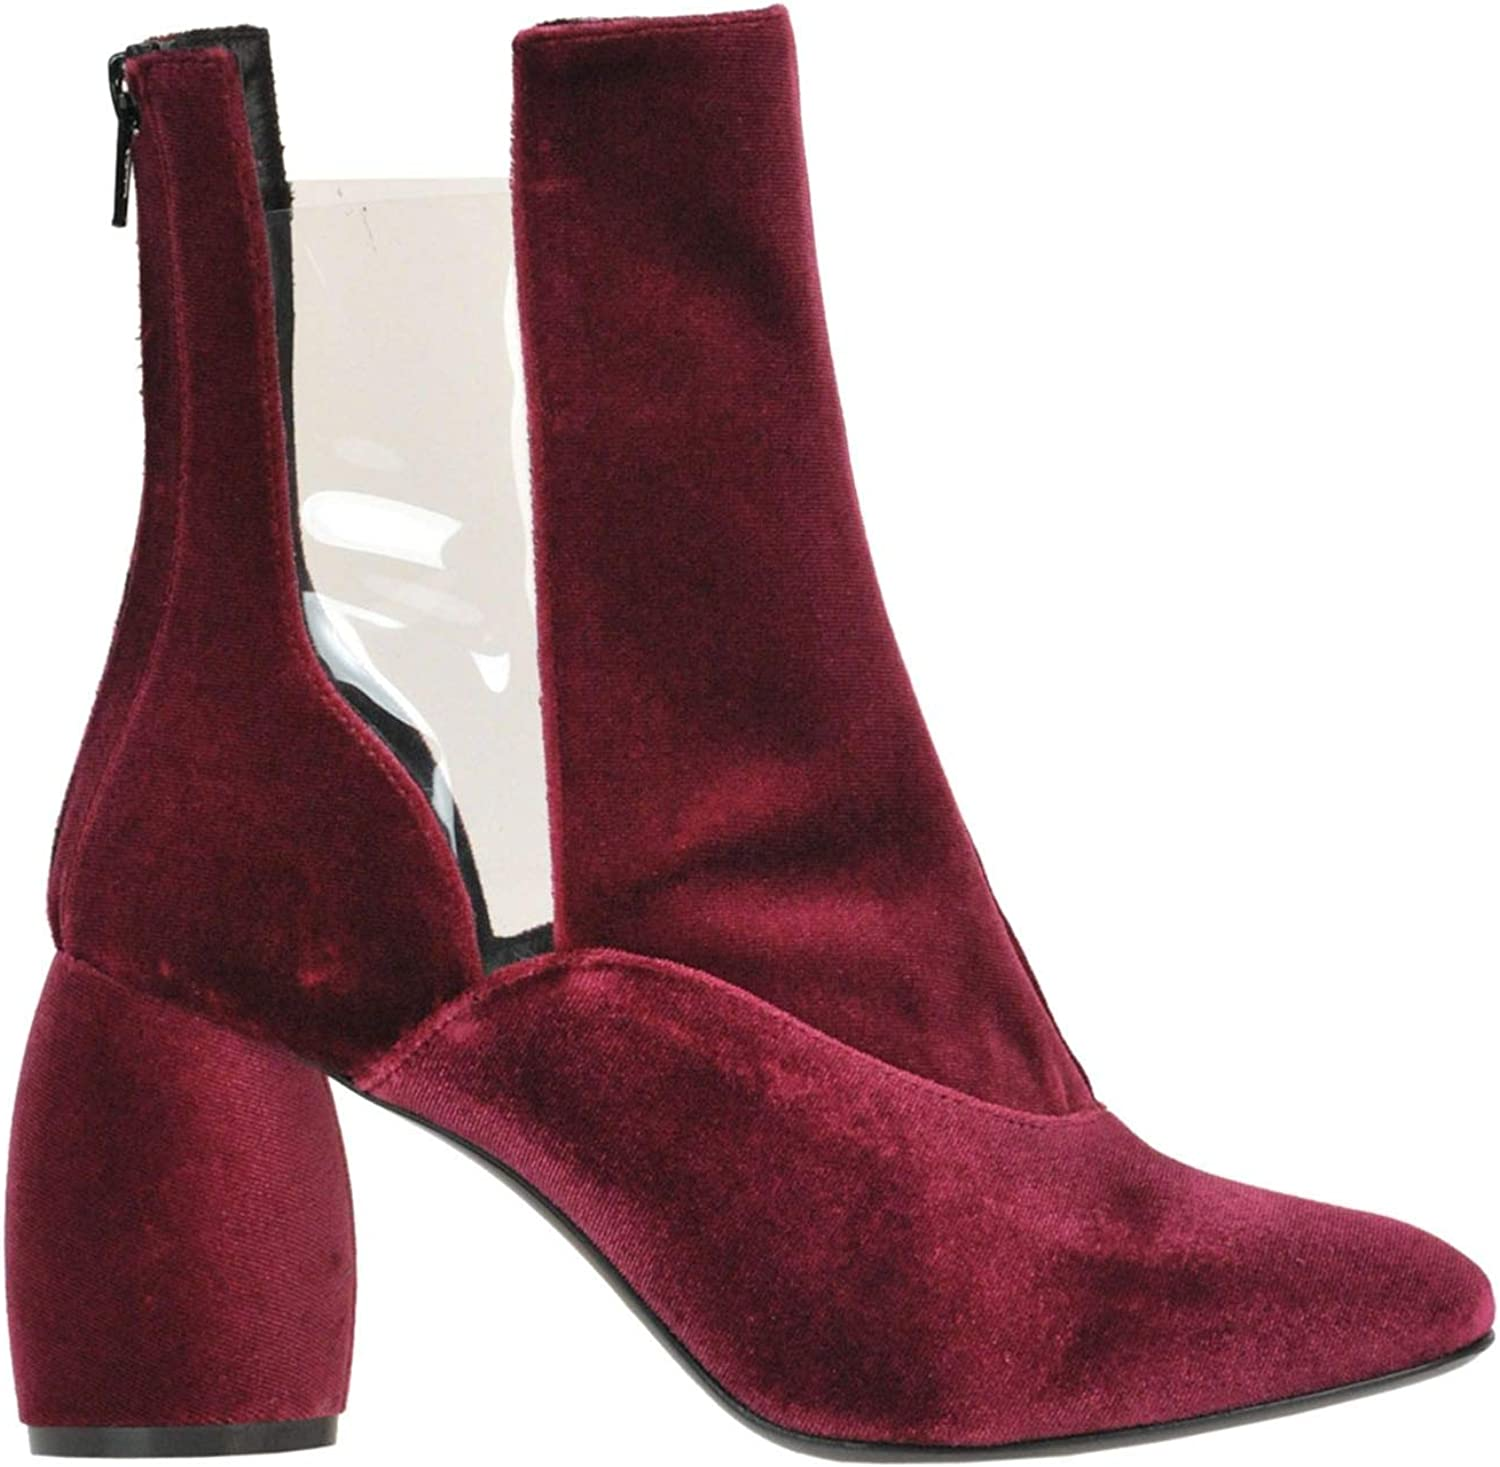 MARC ELLIS Luxury Fashion Womens Ankle Boots Spring Red